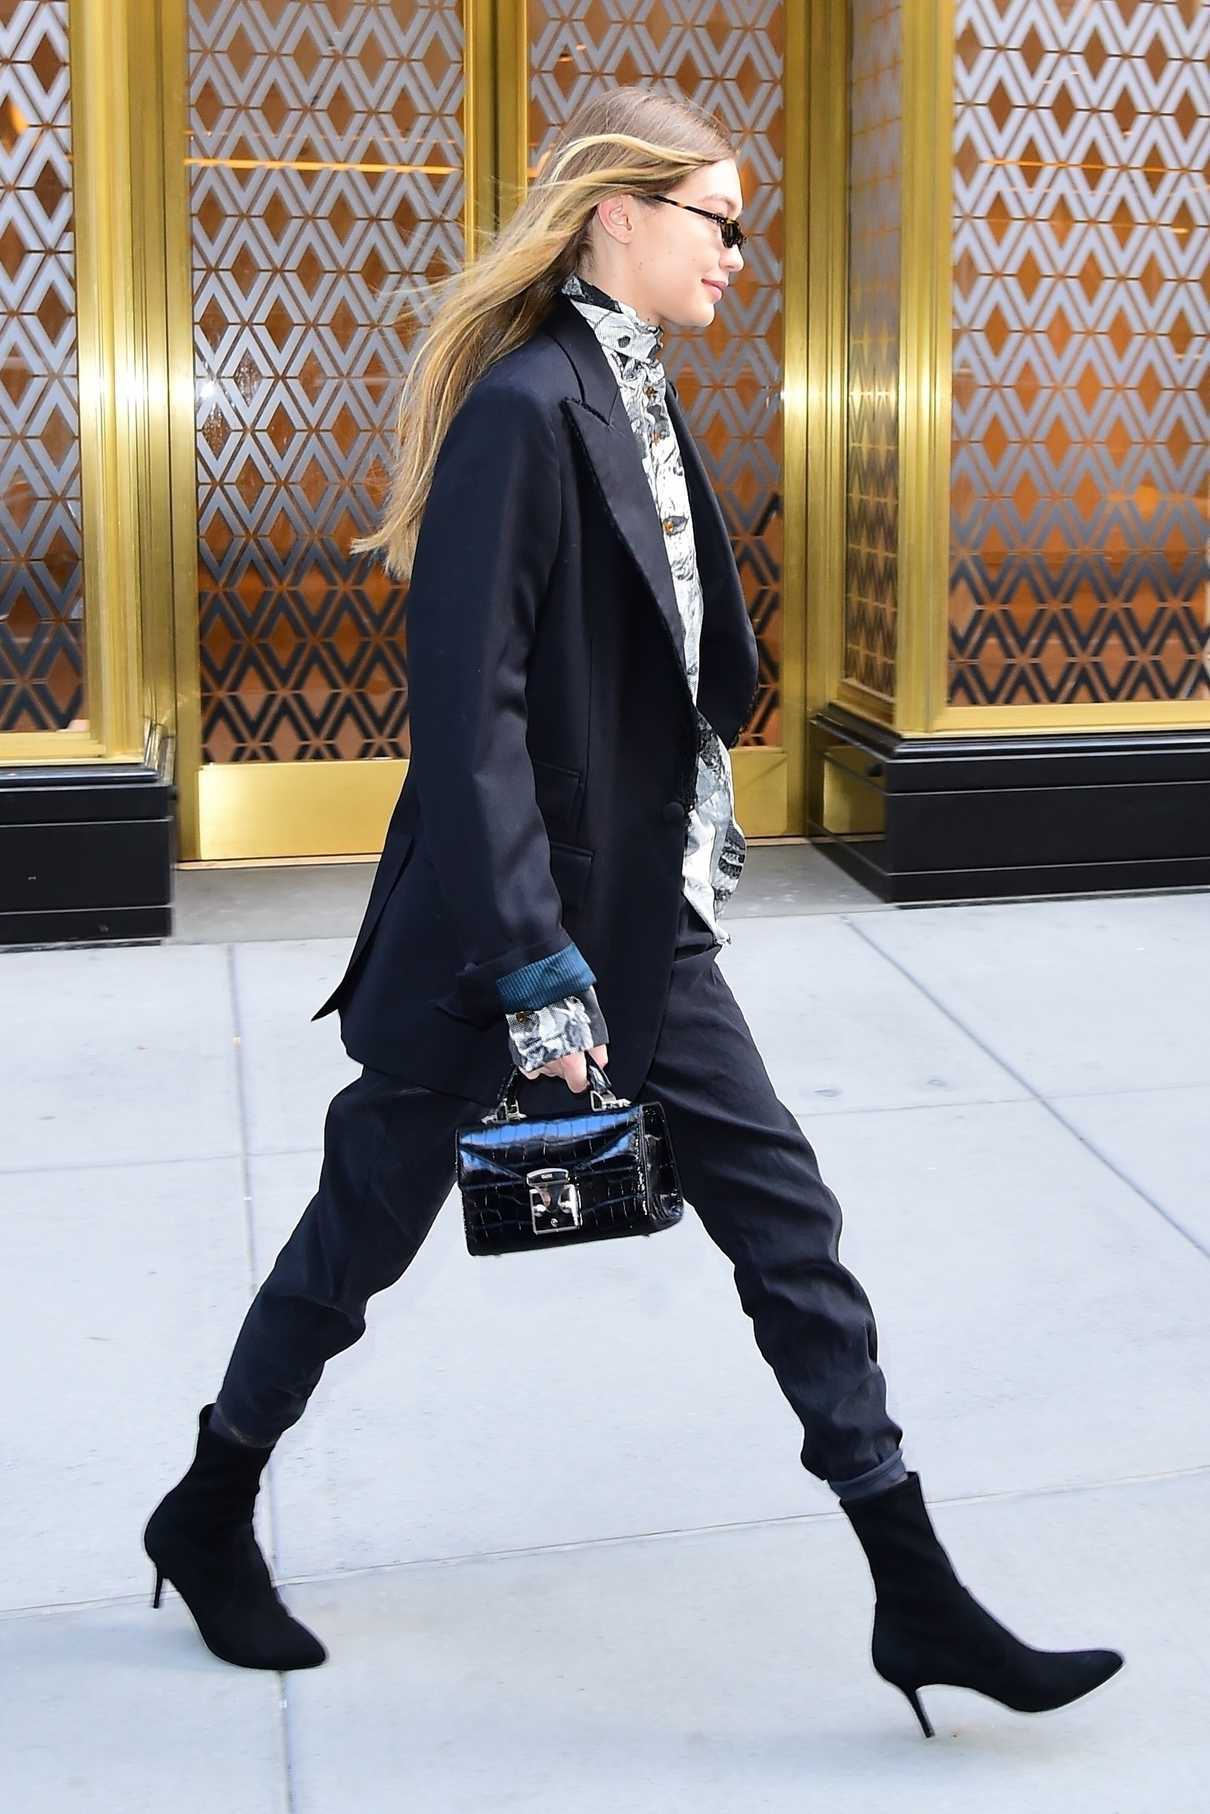 Gigi Hadid Wears a Pant Suit During New York Fashion Week in New York City 02/08/2018-5